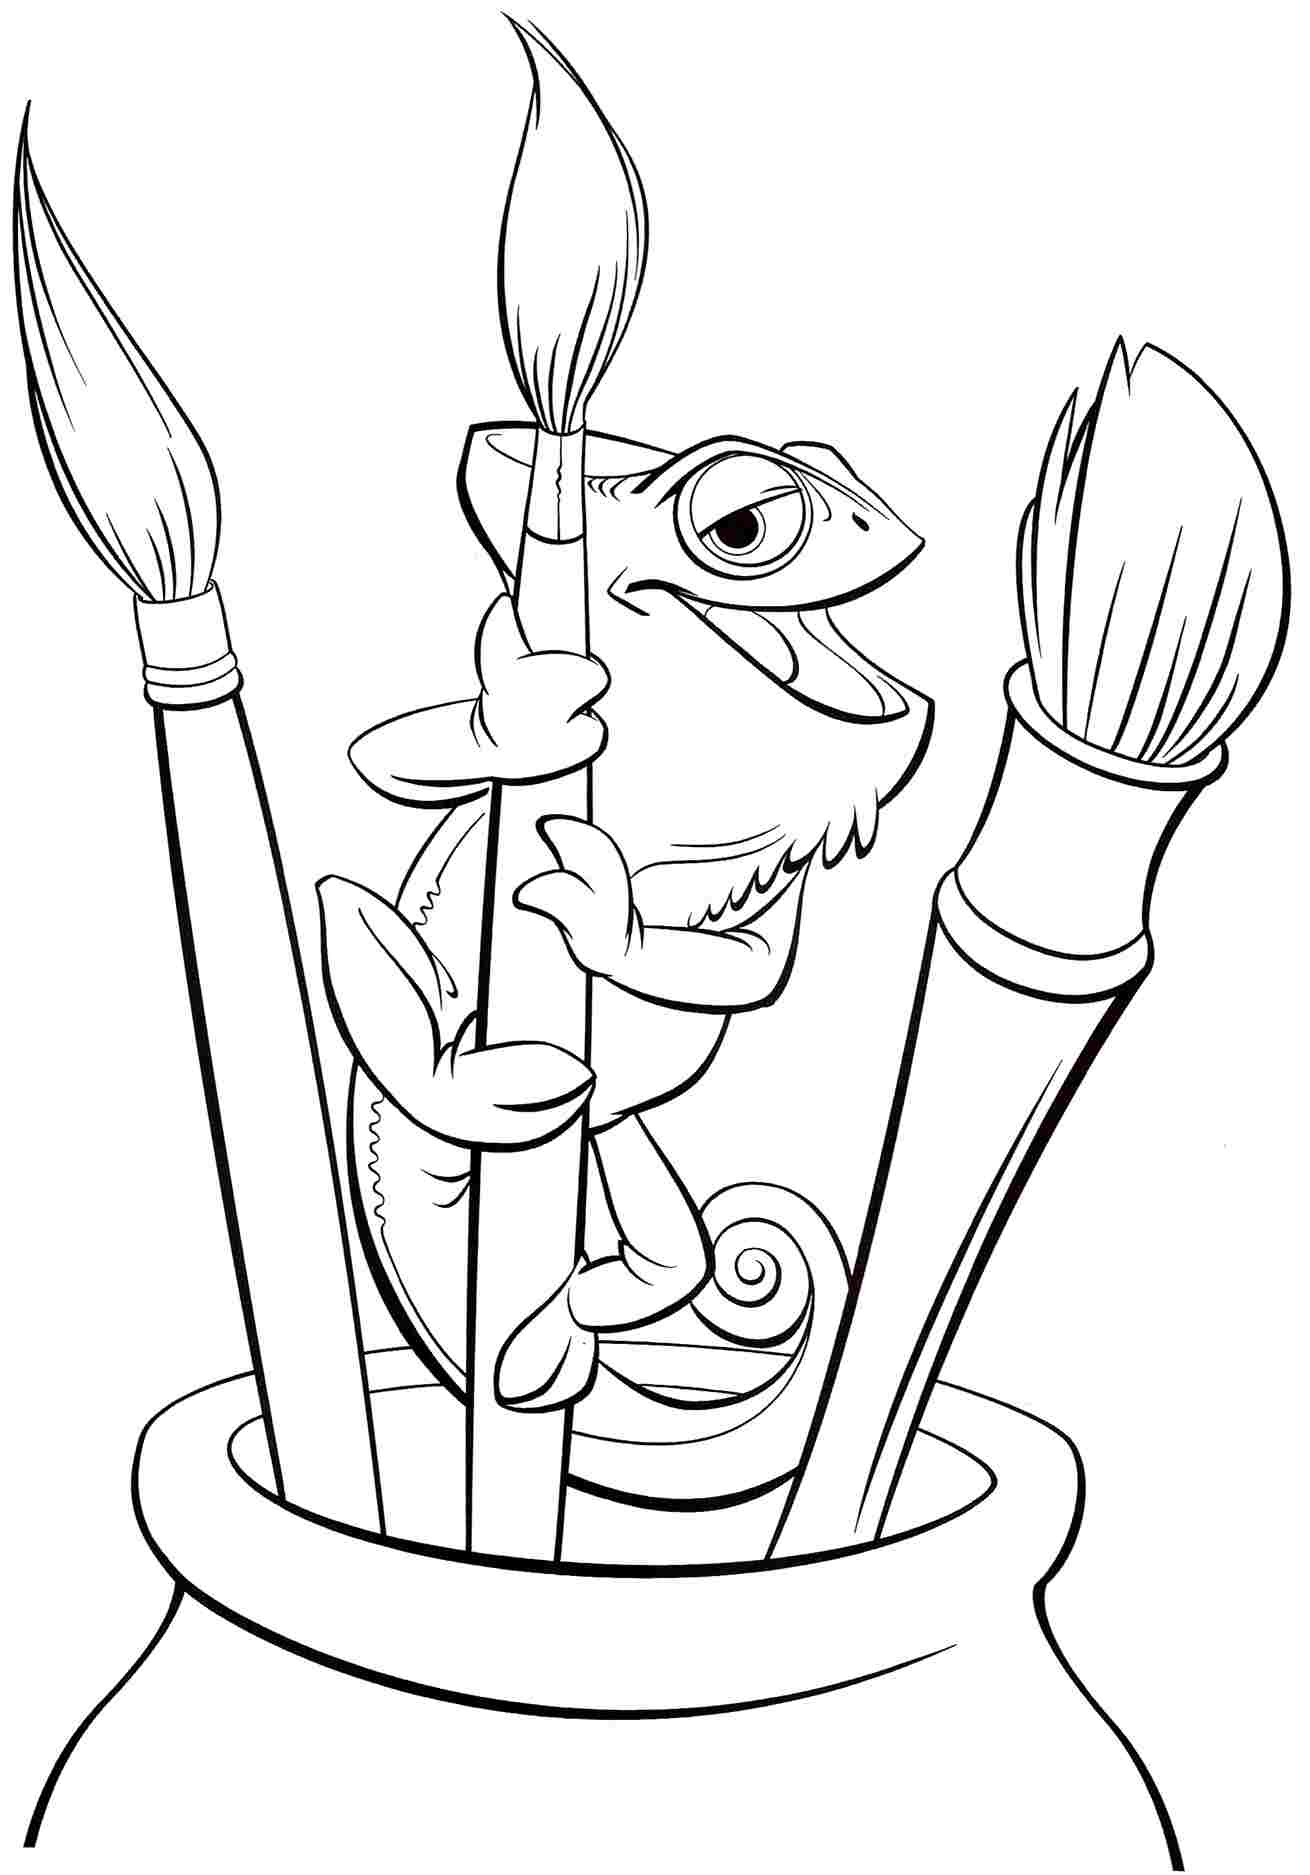 tangled for coloring coloring pages quottangledquot free printable coloring pages of for coloring tangled